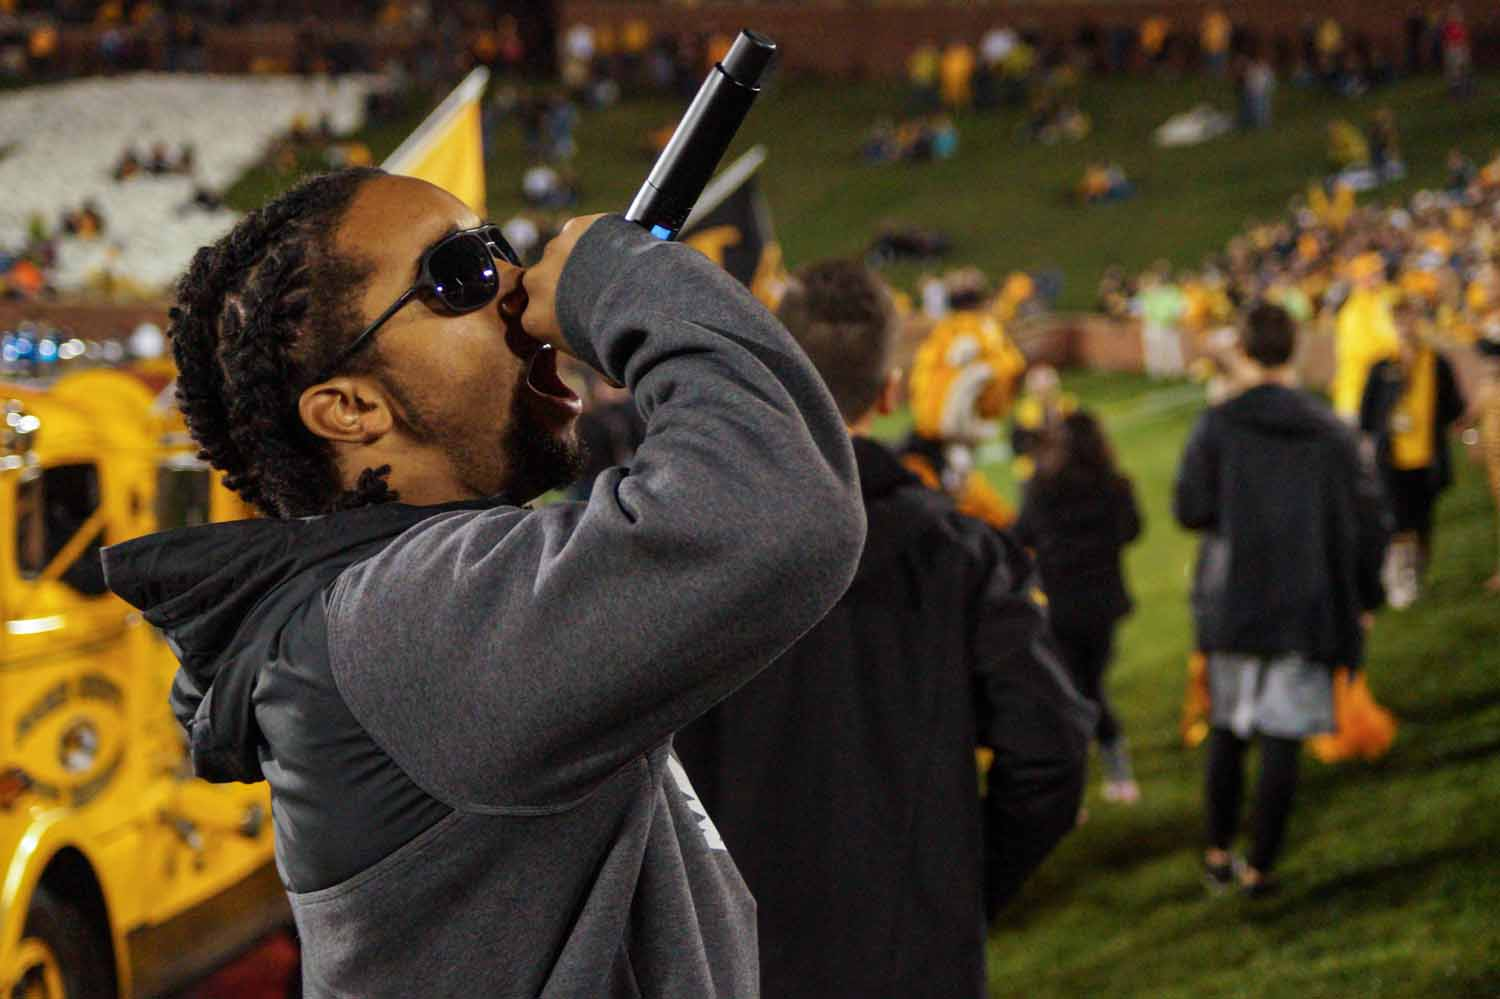 Nicholas Rodriguez, 'NicDanger', hypes up Tiger's Lair right before kickoff. Photo by Allison Collins.